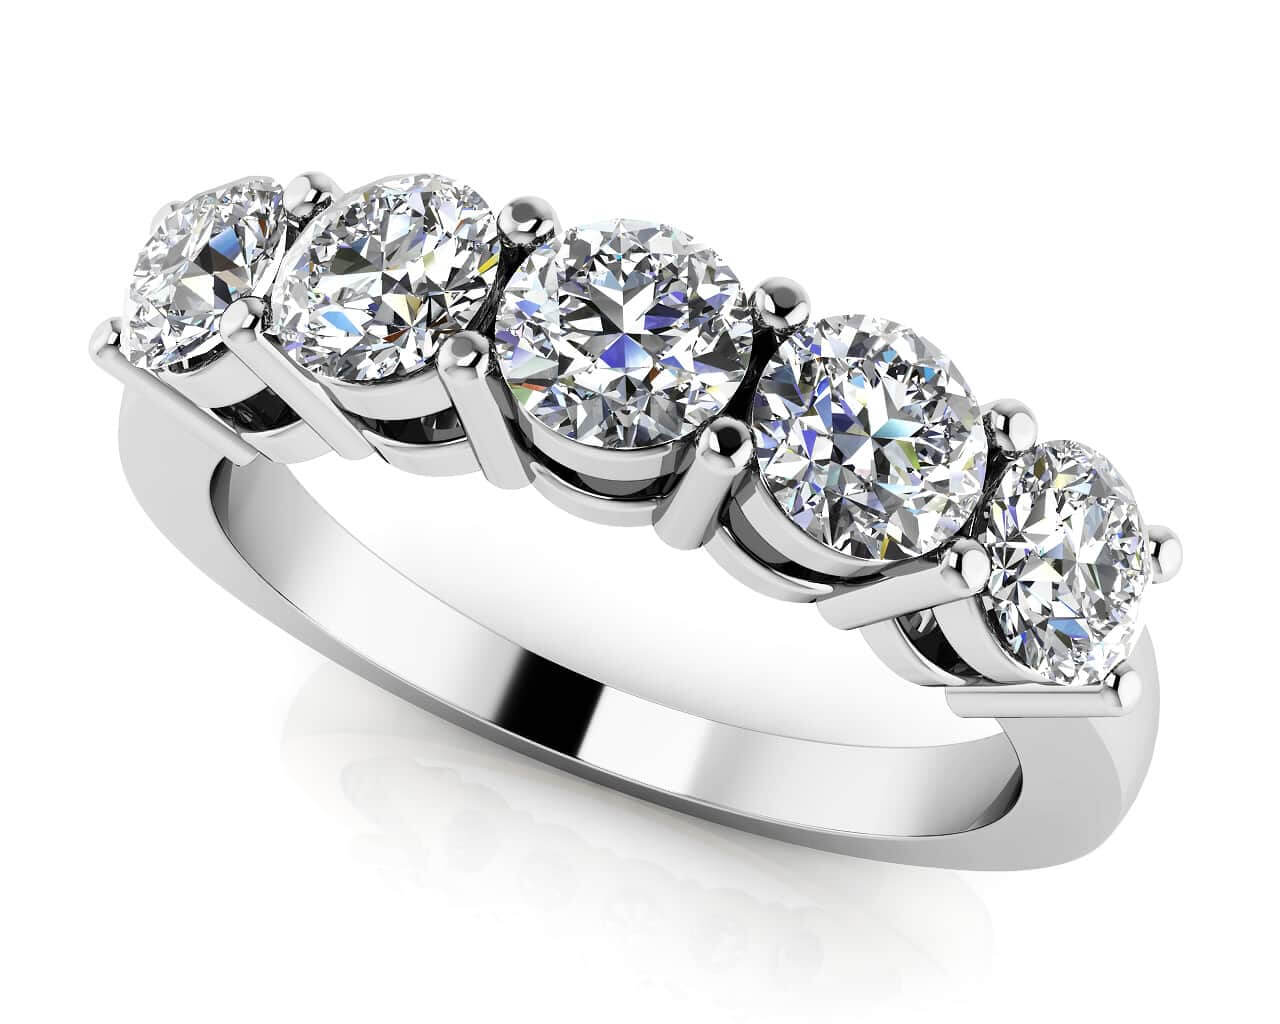 band classic tw diamond five bands ring princess in platinum stone p cut ct